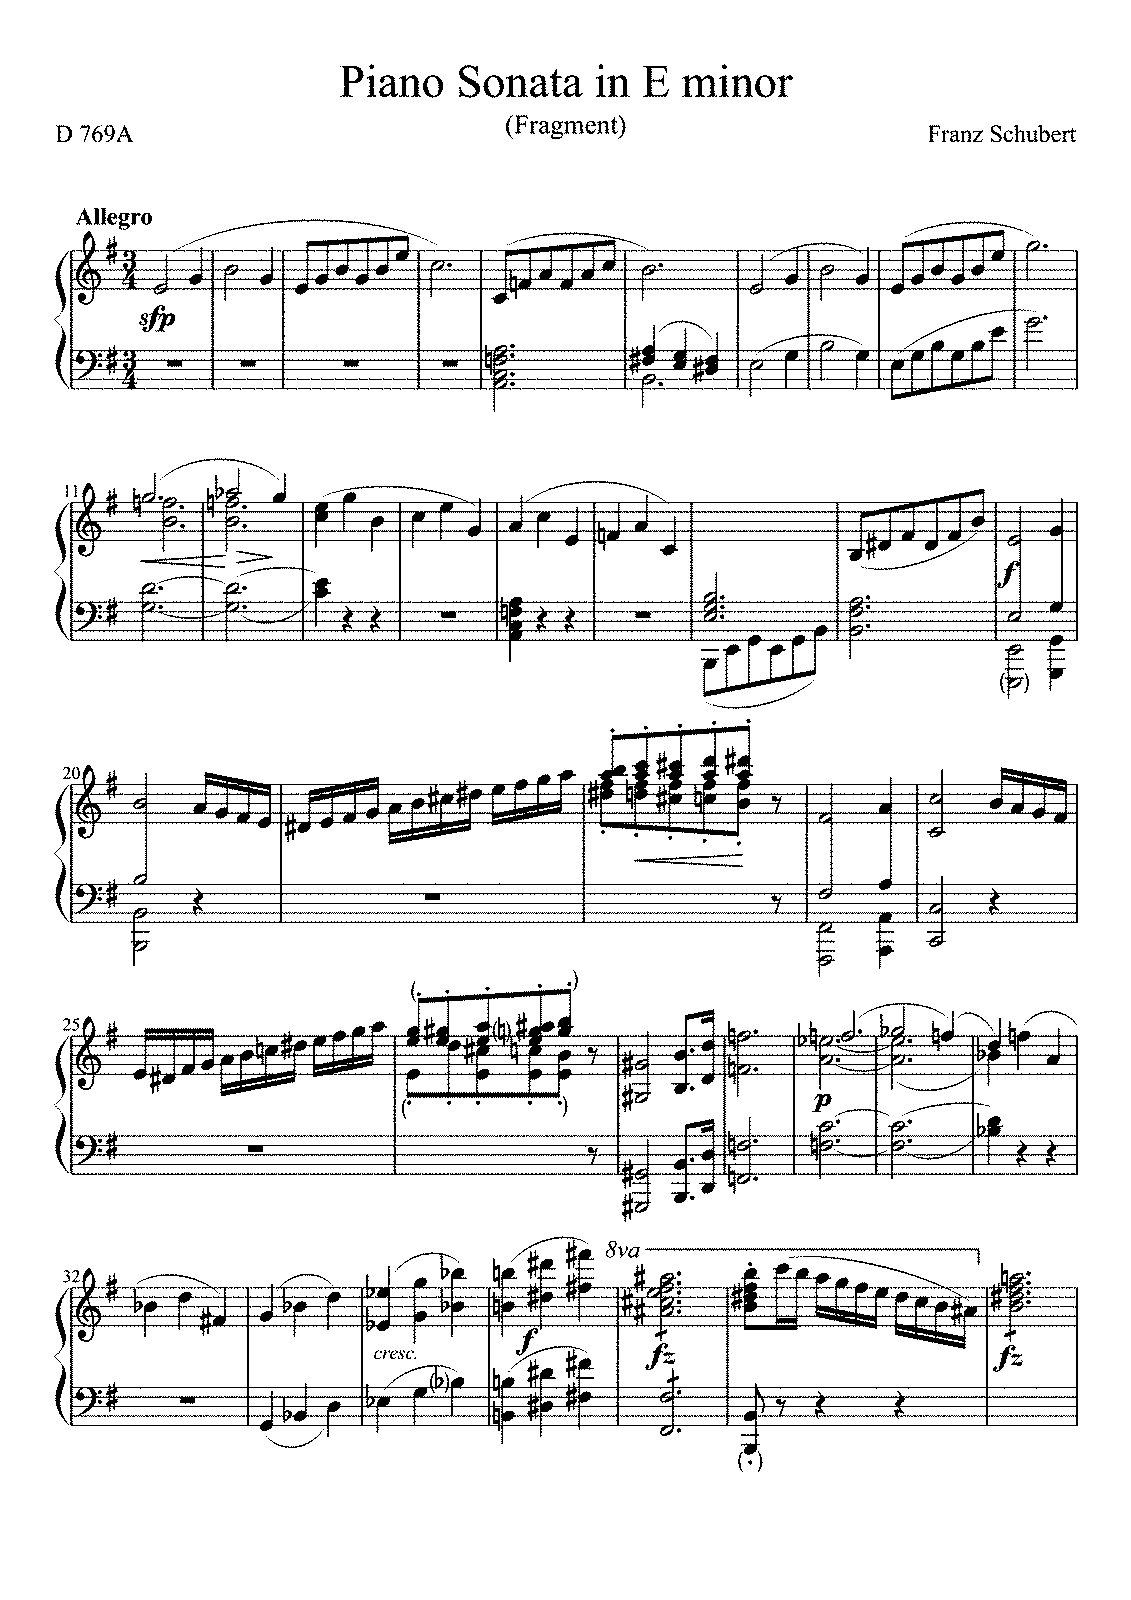 PMLP580960-Franz Schubert Piano Sonata in E minor D769A.pdf